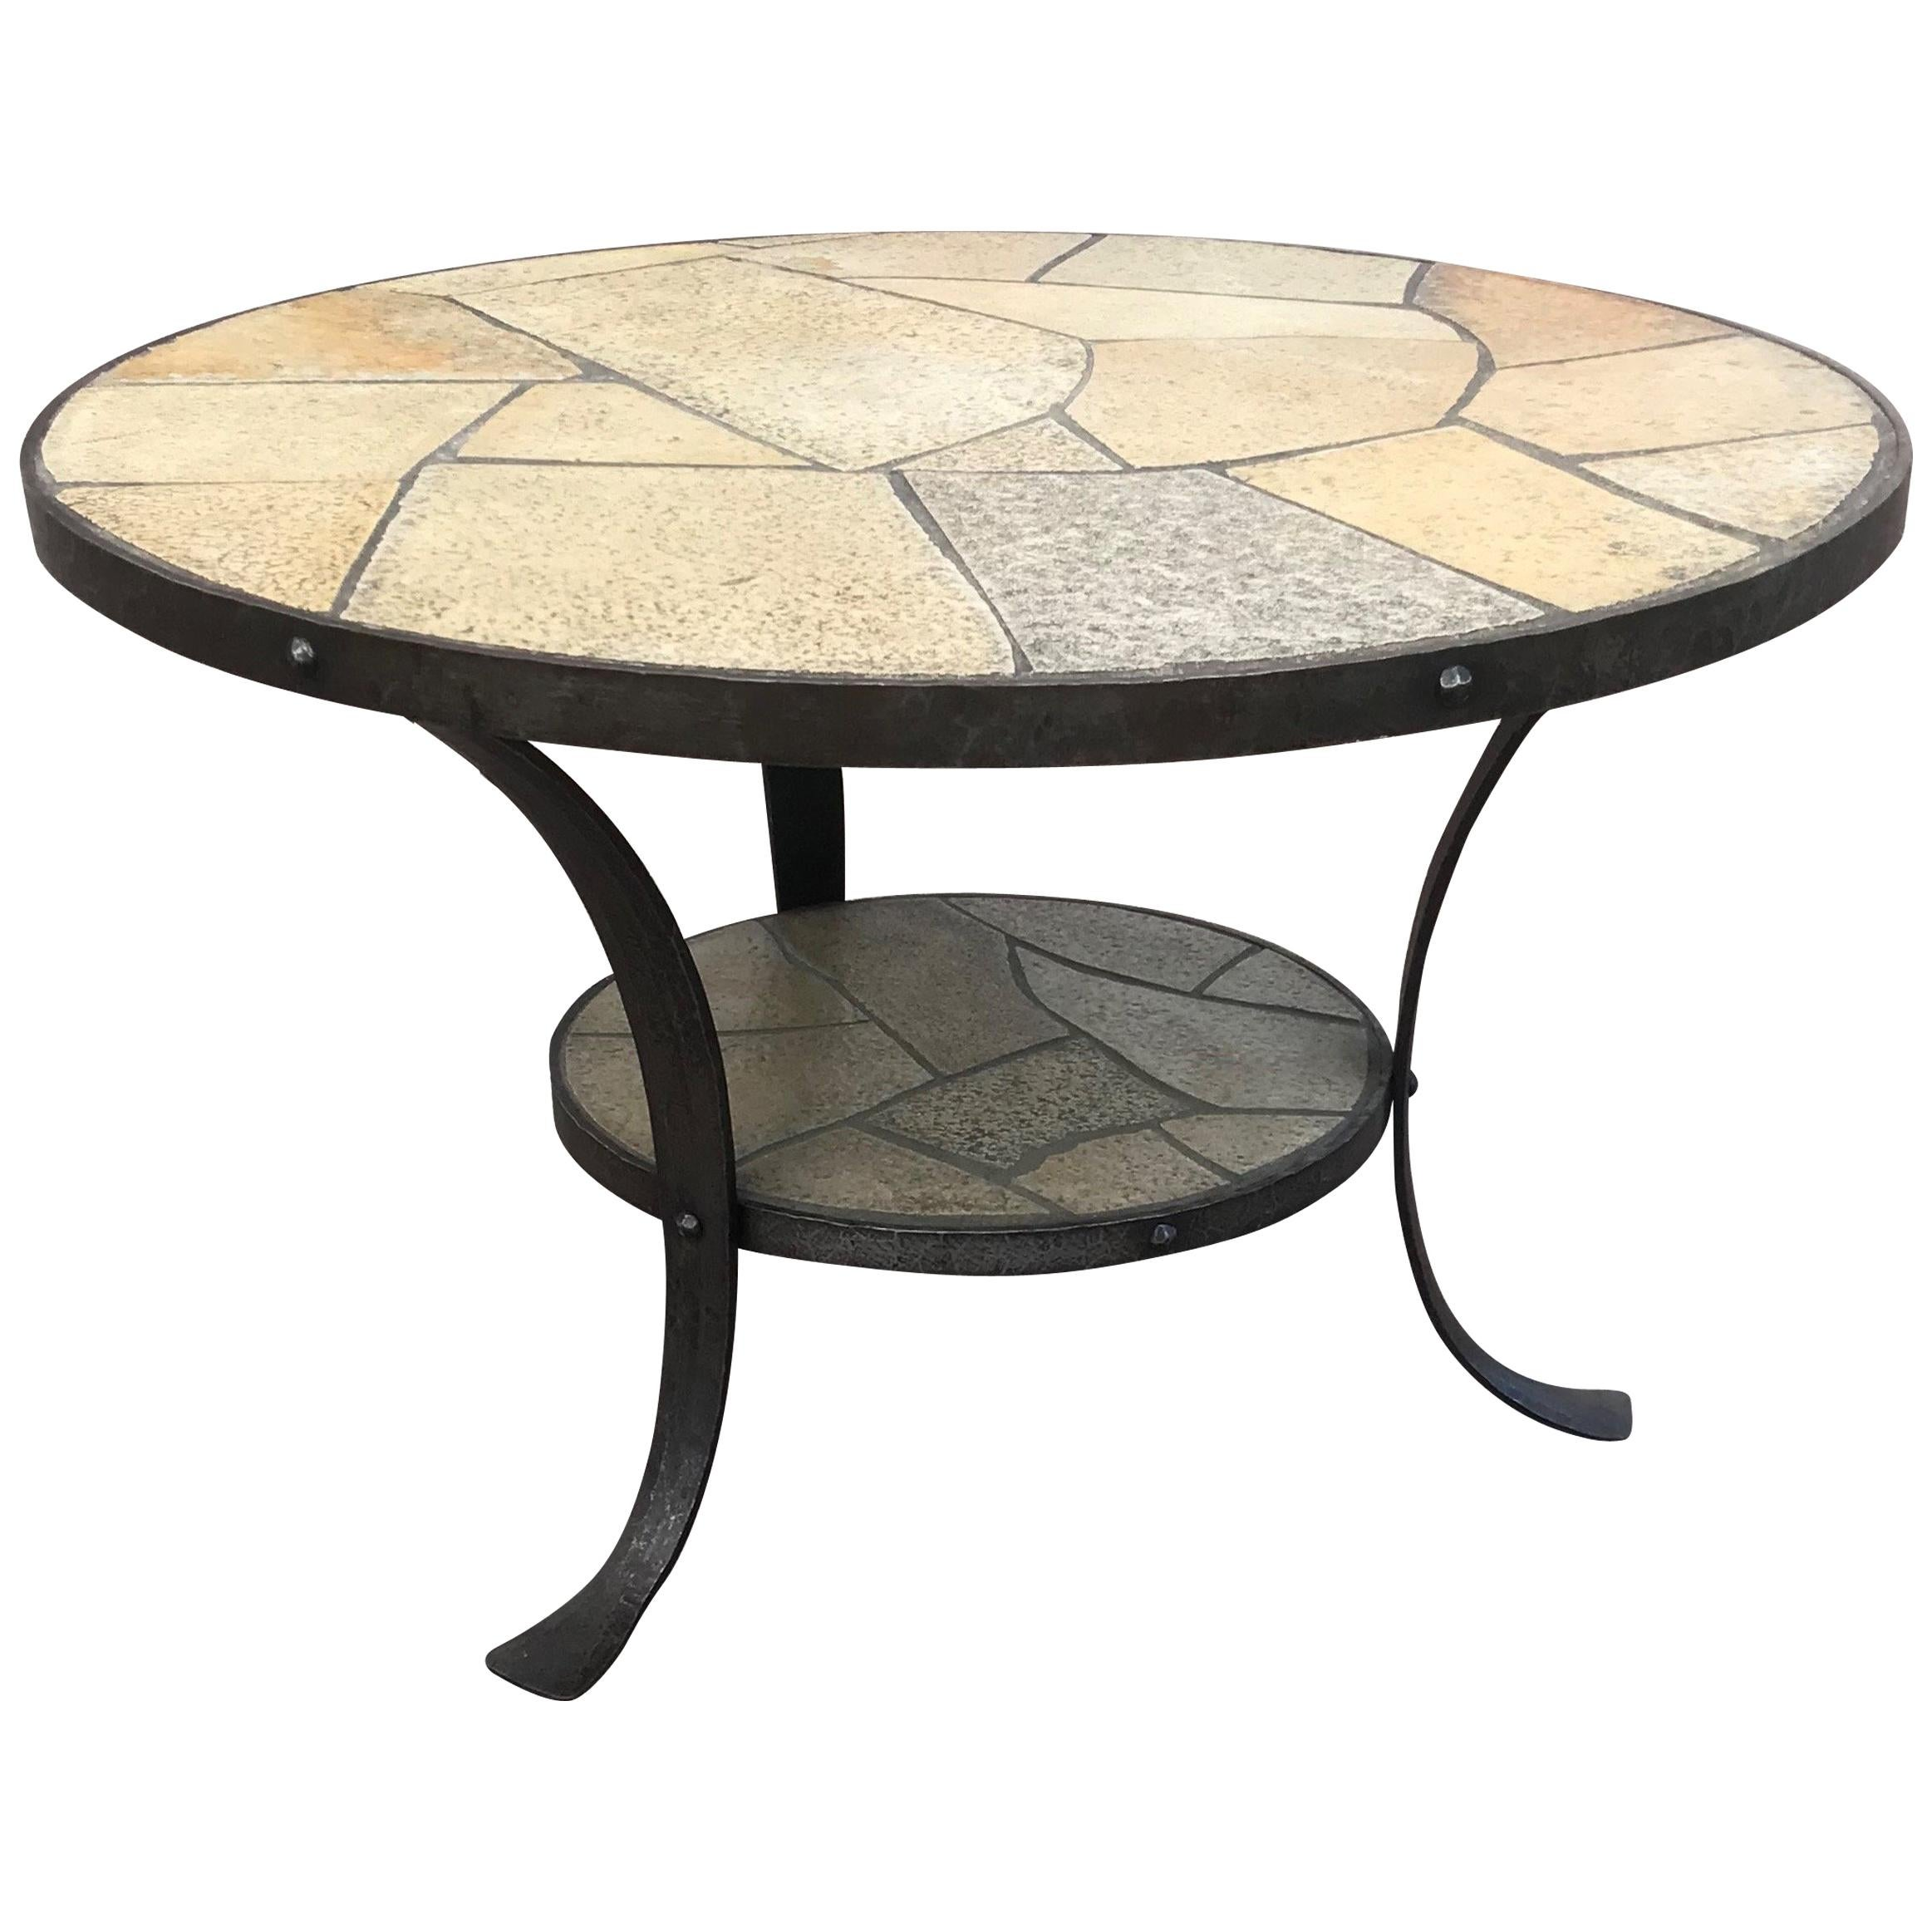 perfect size midcentury modern wrought iron base slate stone top coffee table